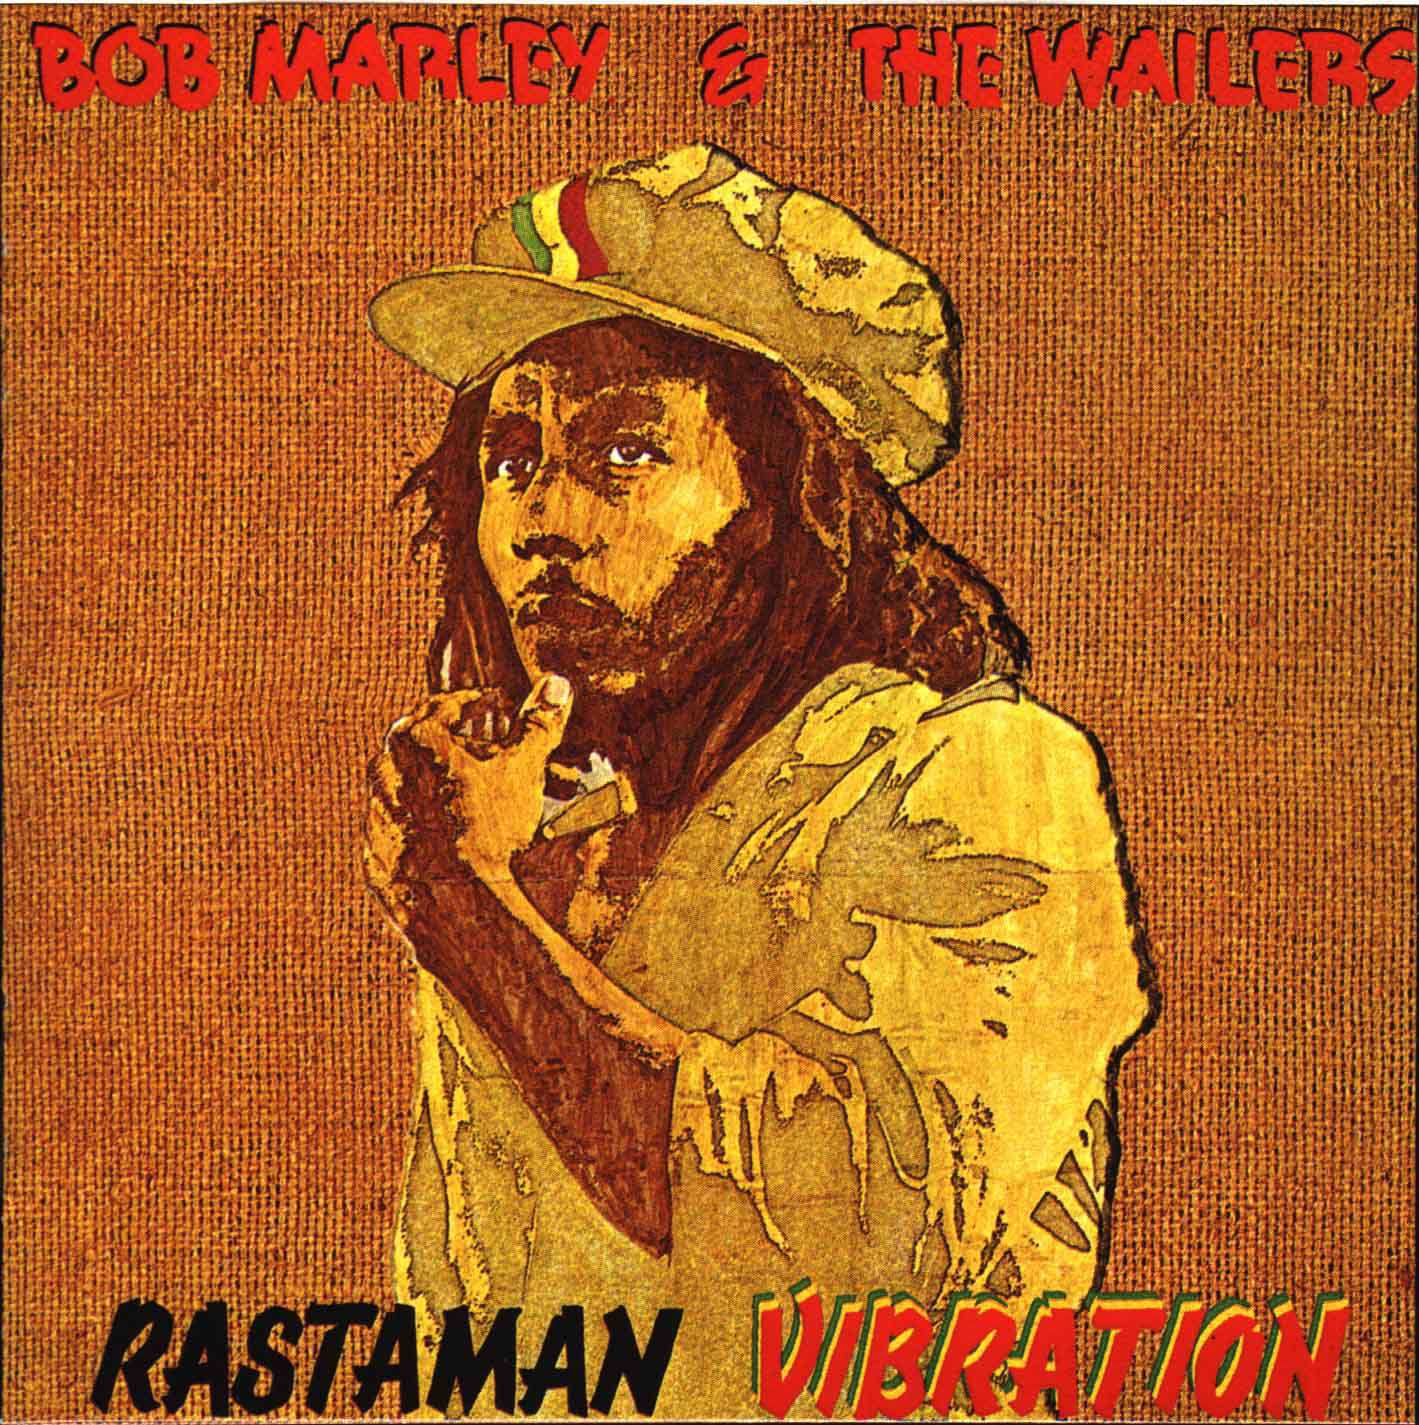 Canzone 1 WAR (Bob Marley - 1976) Link per ascoltare la canzone http://www.youtube.com/watch?